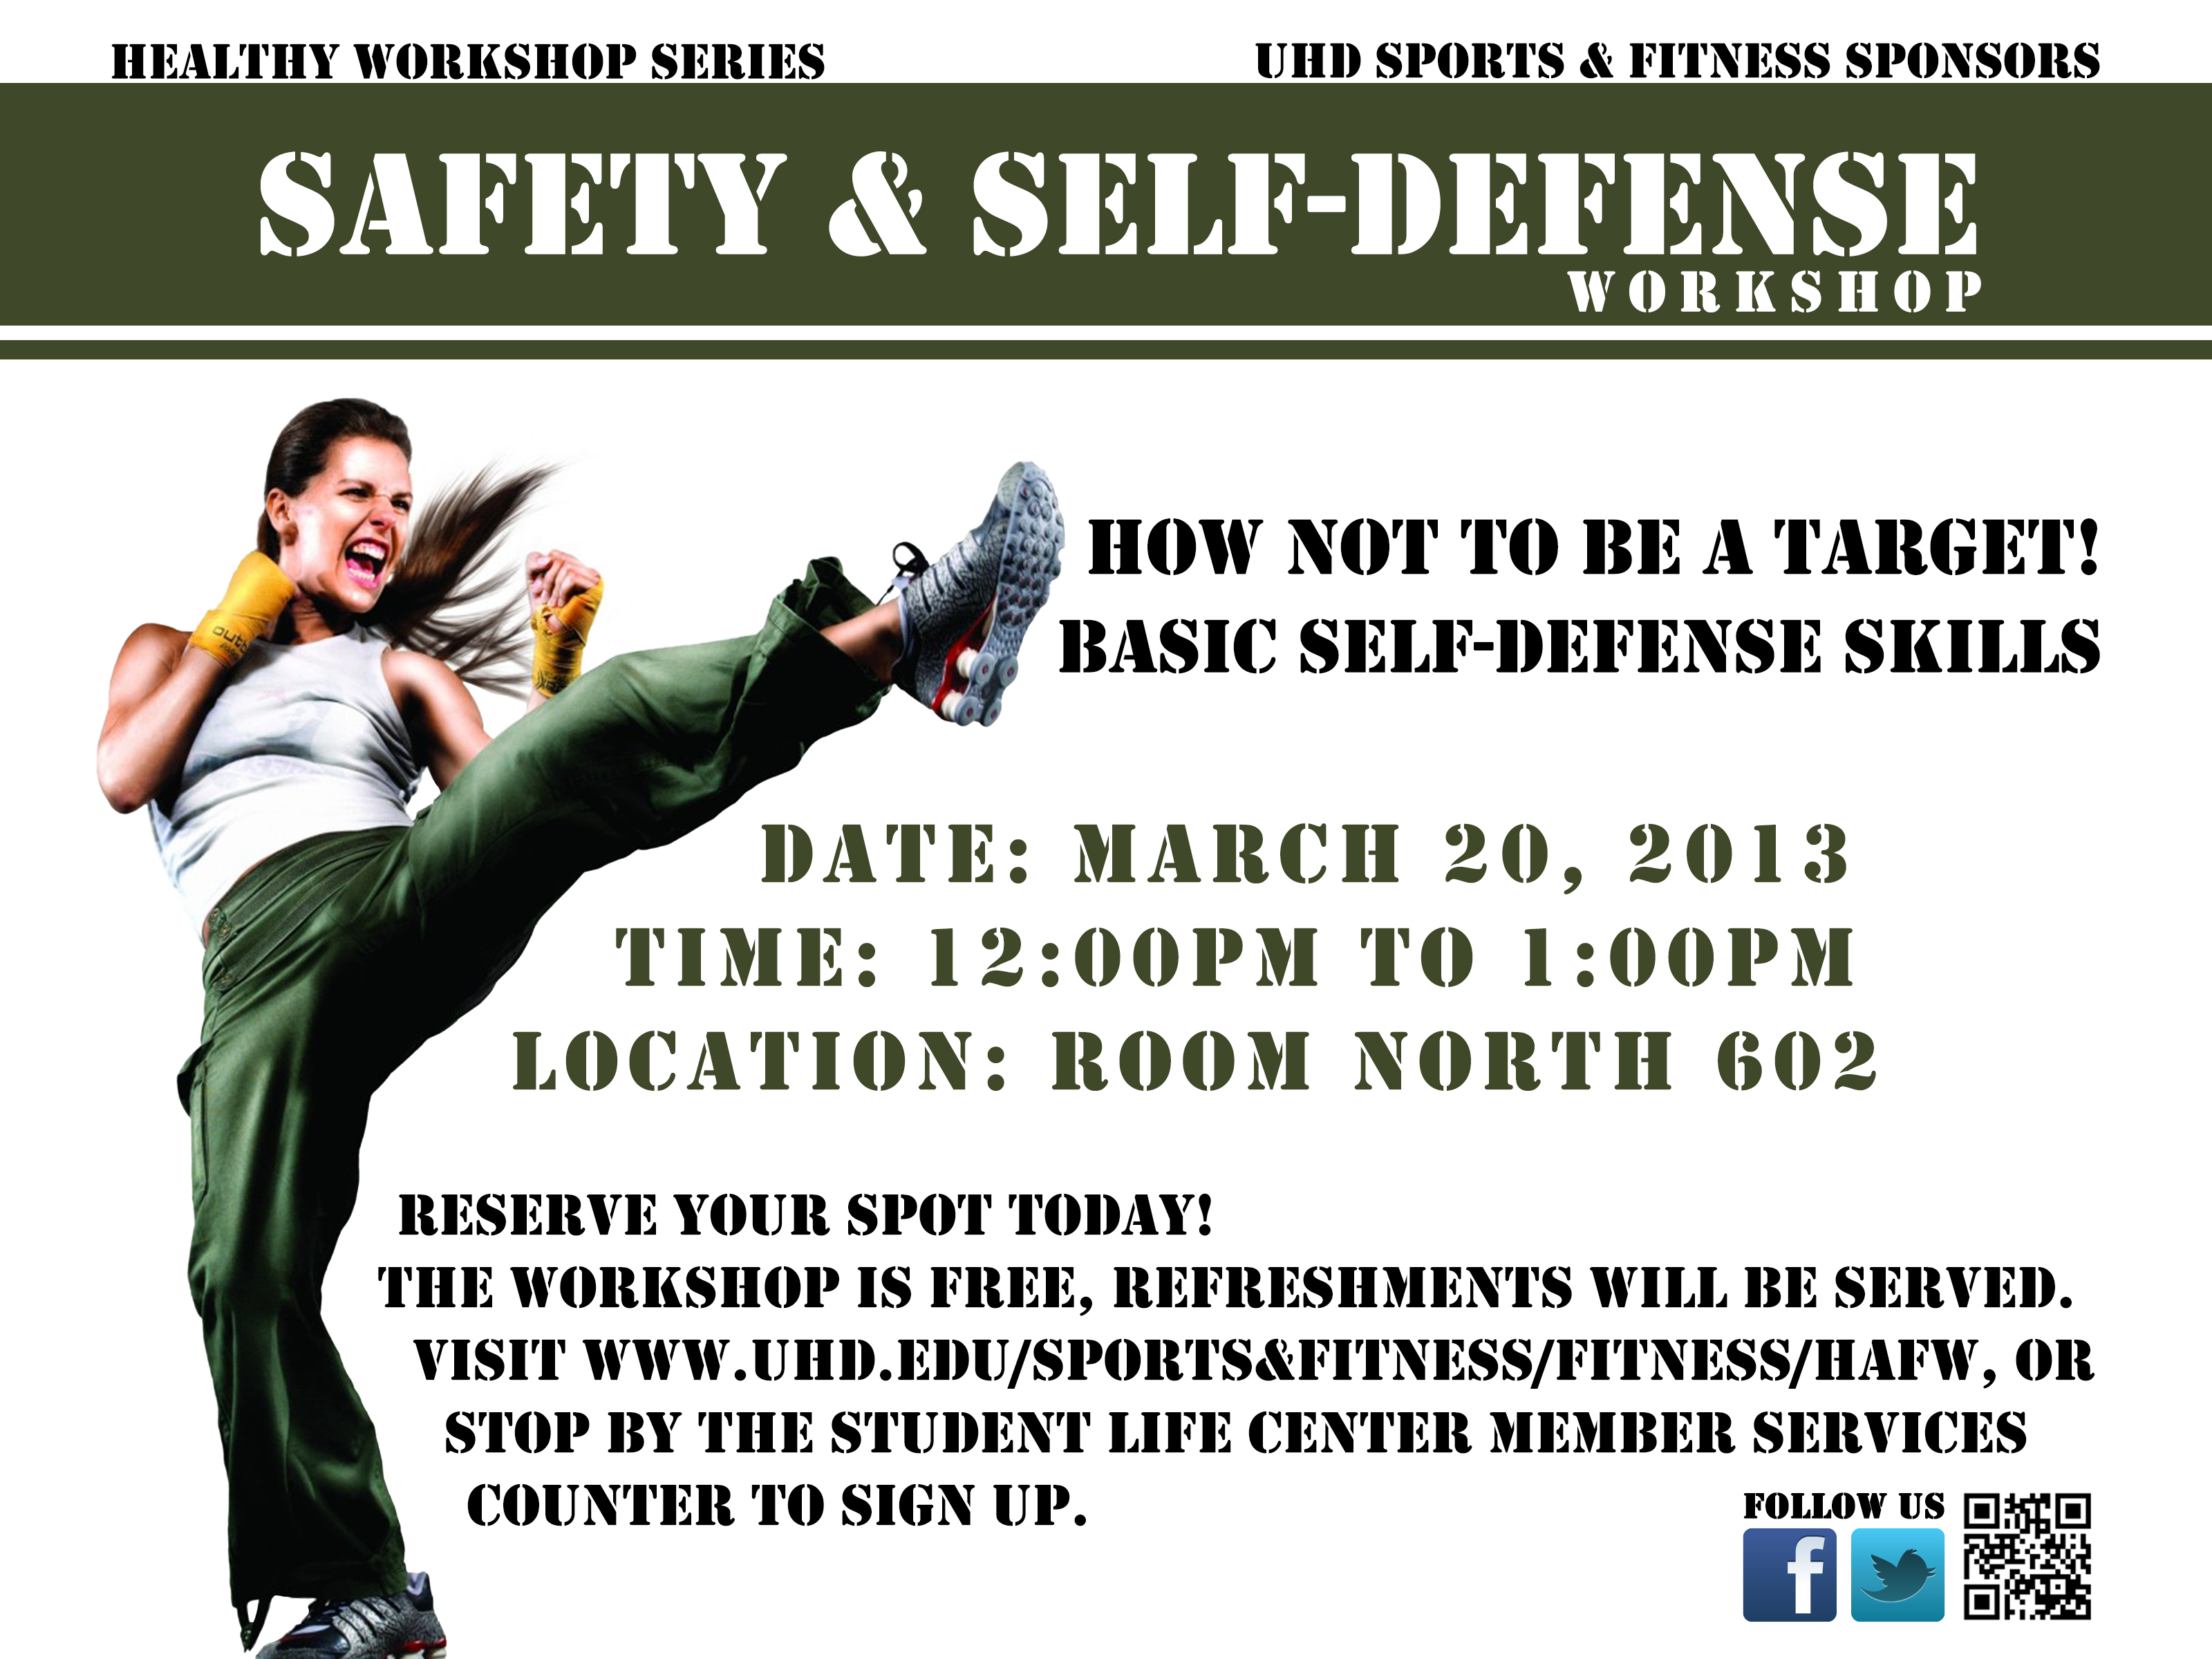 Safety-and-self-defense-workshop